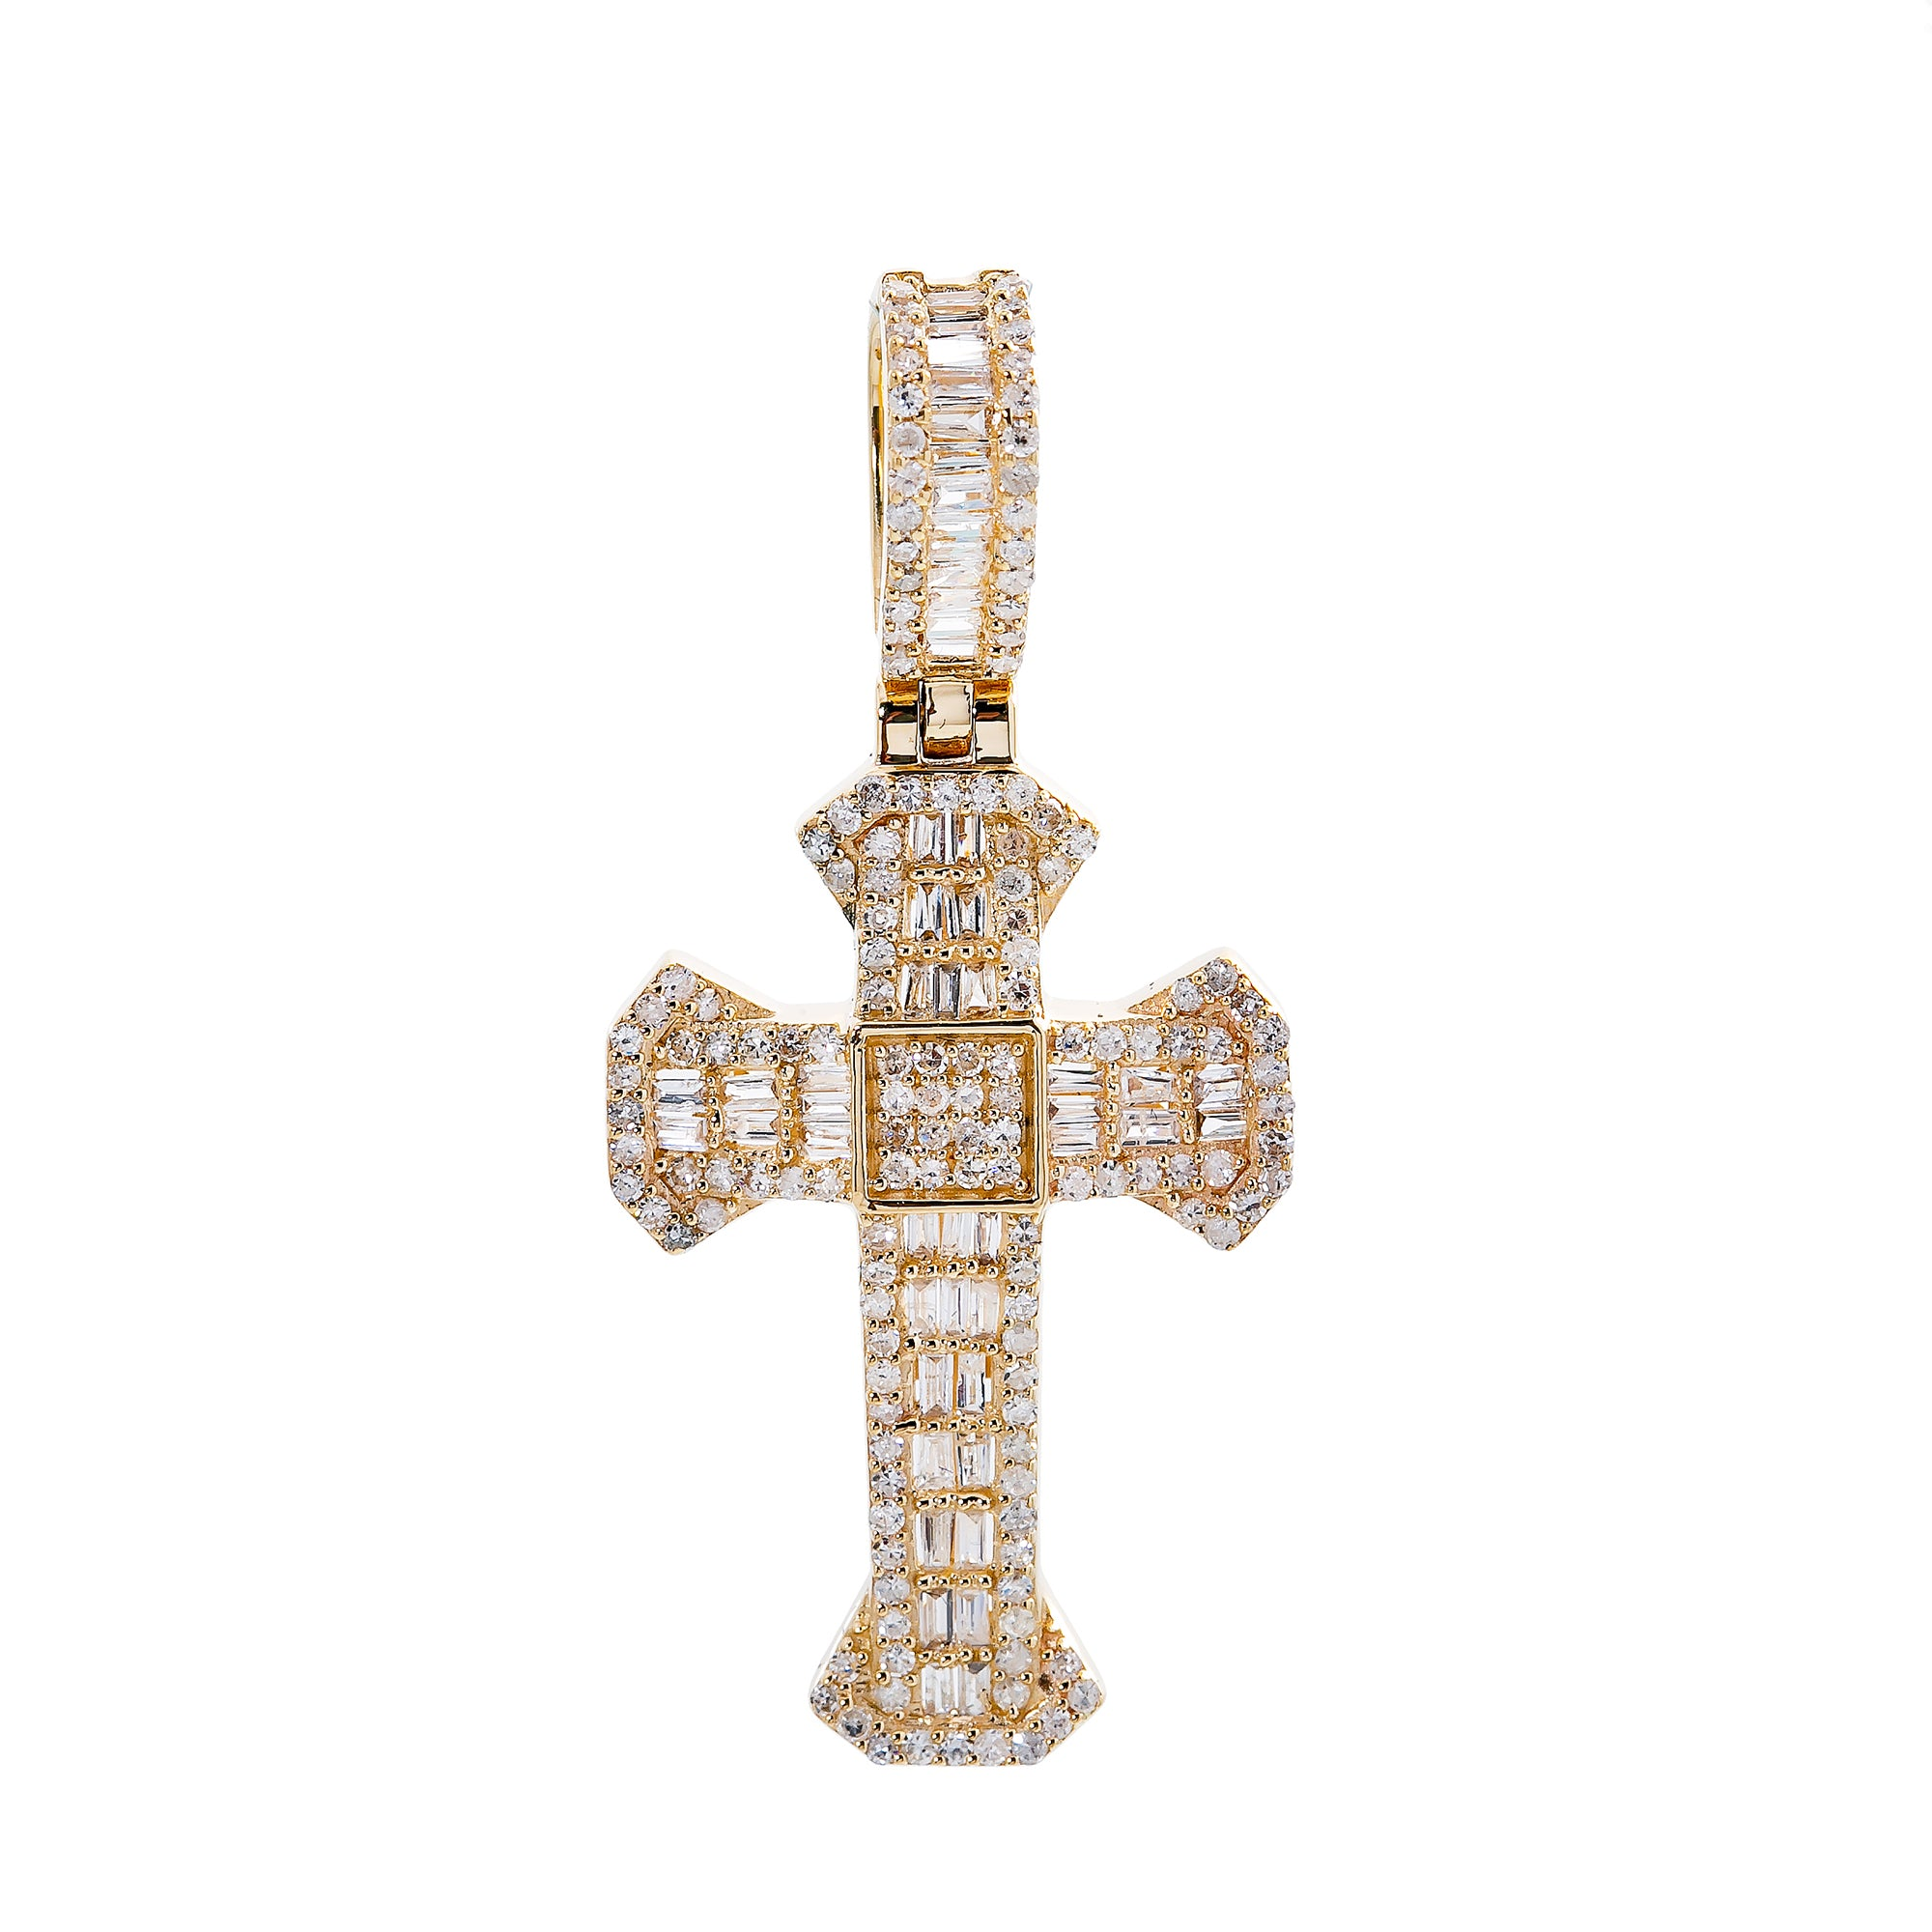 Unisex 14K Yellow Gold Cross Pendant with 0.66 CT Diamonds